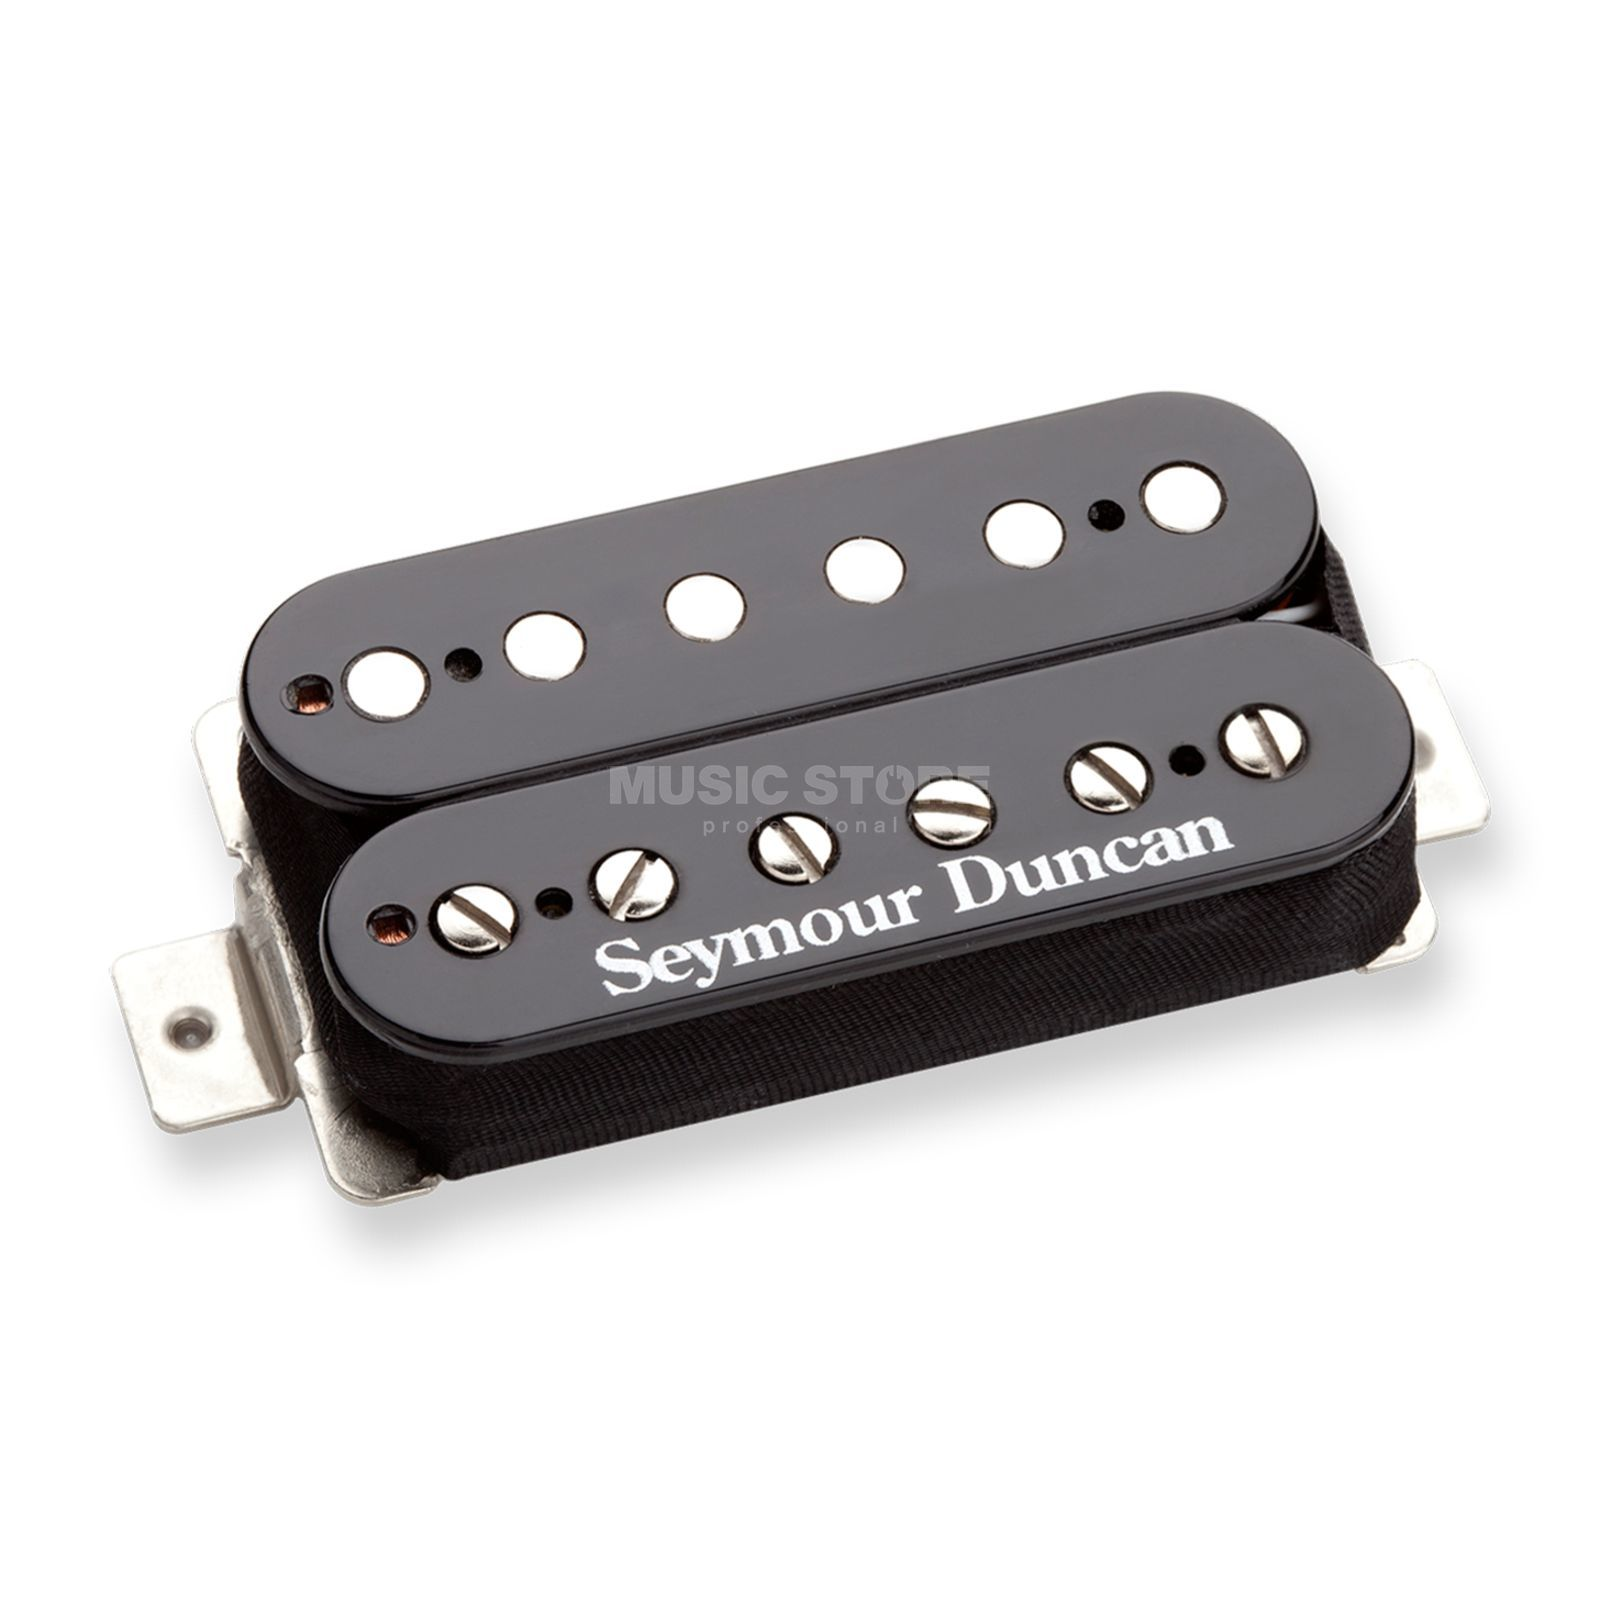 Seymour Duncan SH-14 BLK Custom Five Black Bridge Produktbild